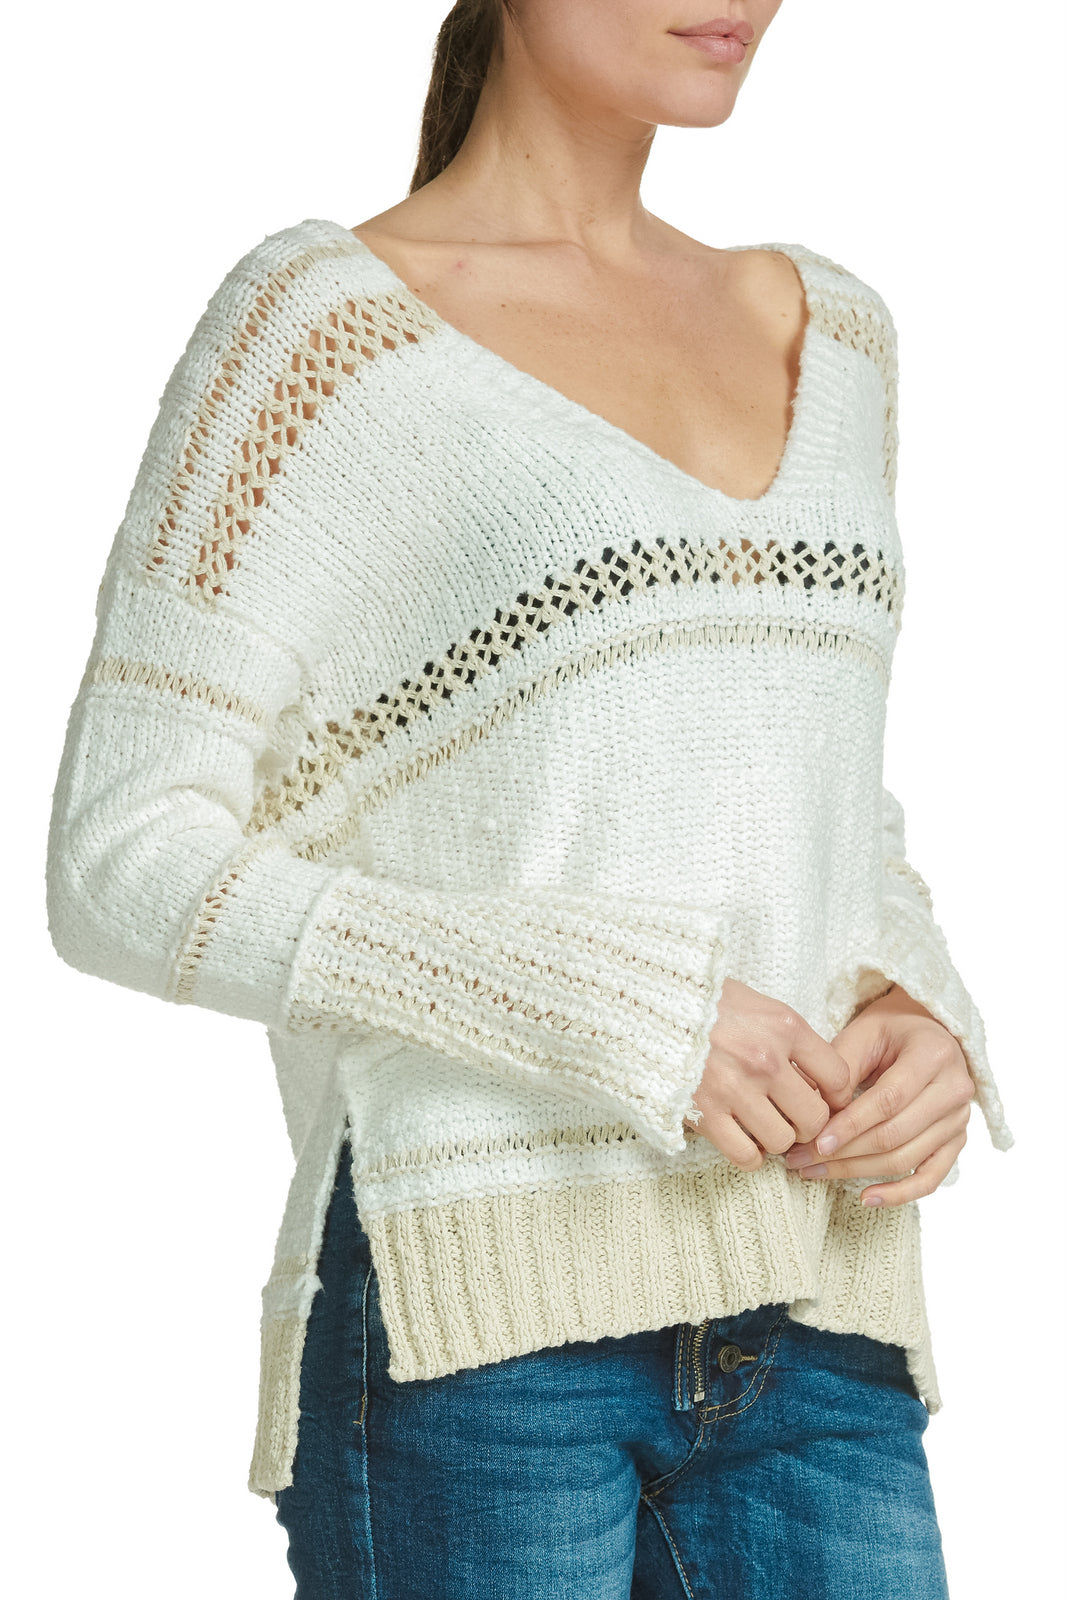 Winter Whites Sweater